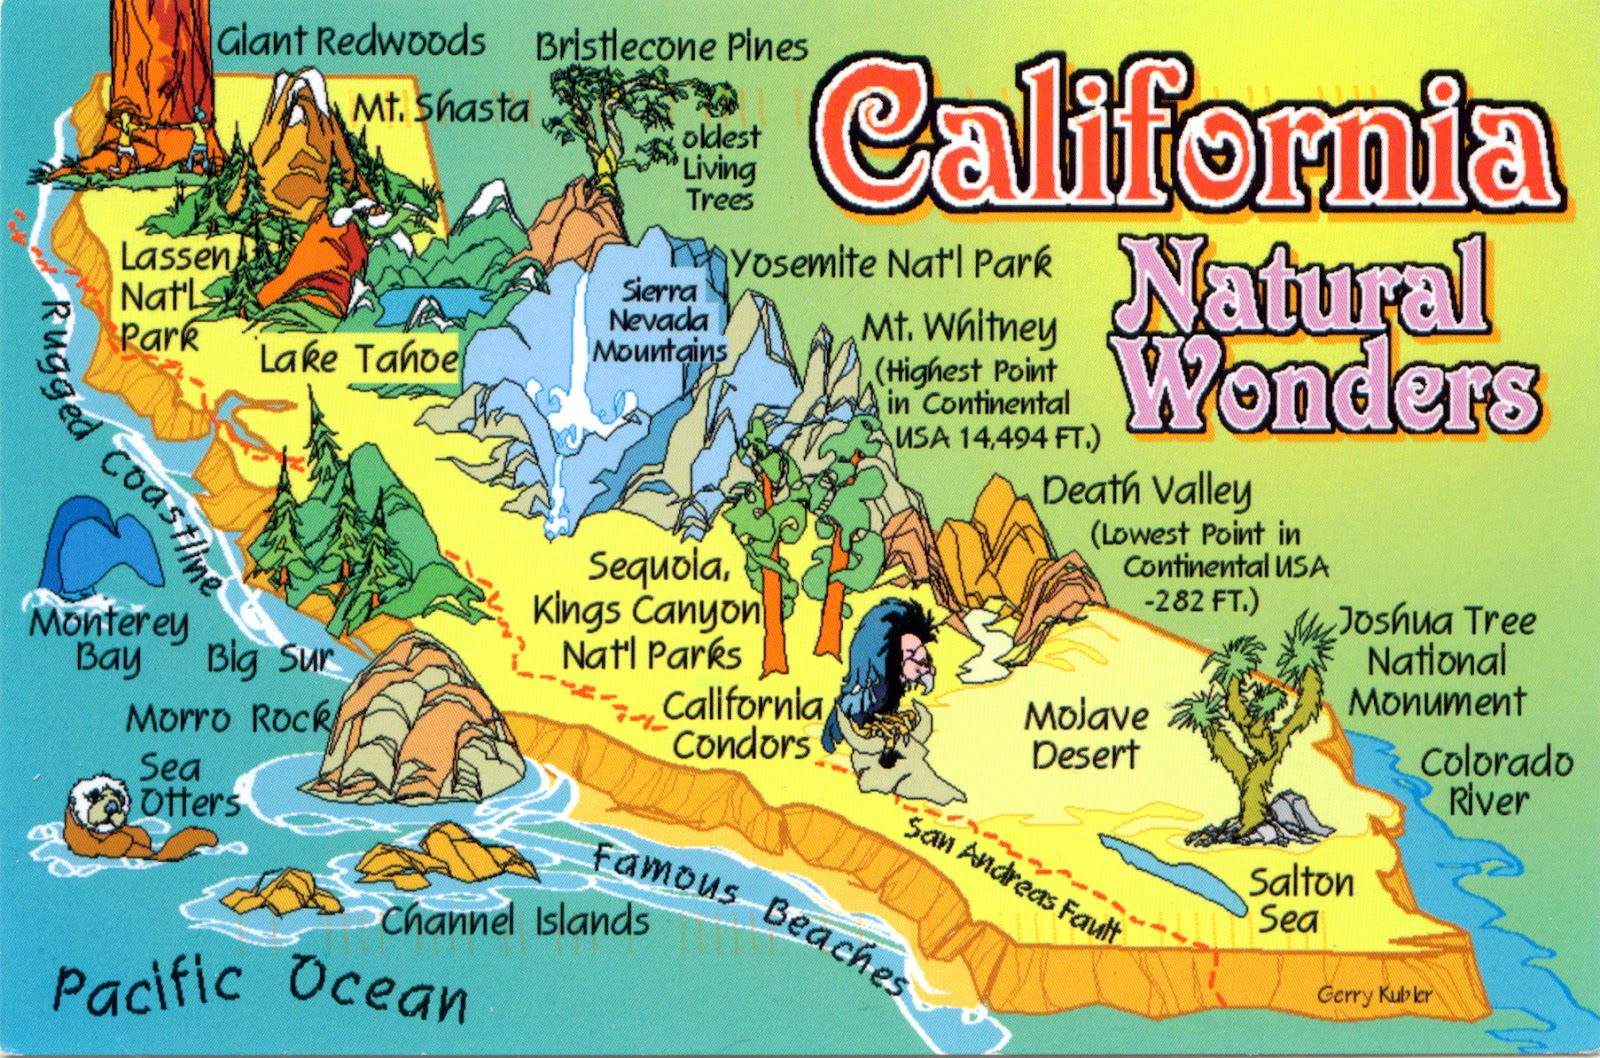 California Map Cartoon.World Come To My Home 0479 United States California